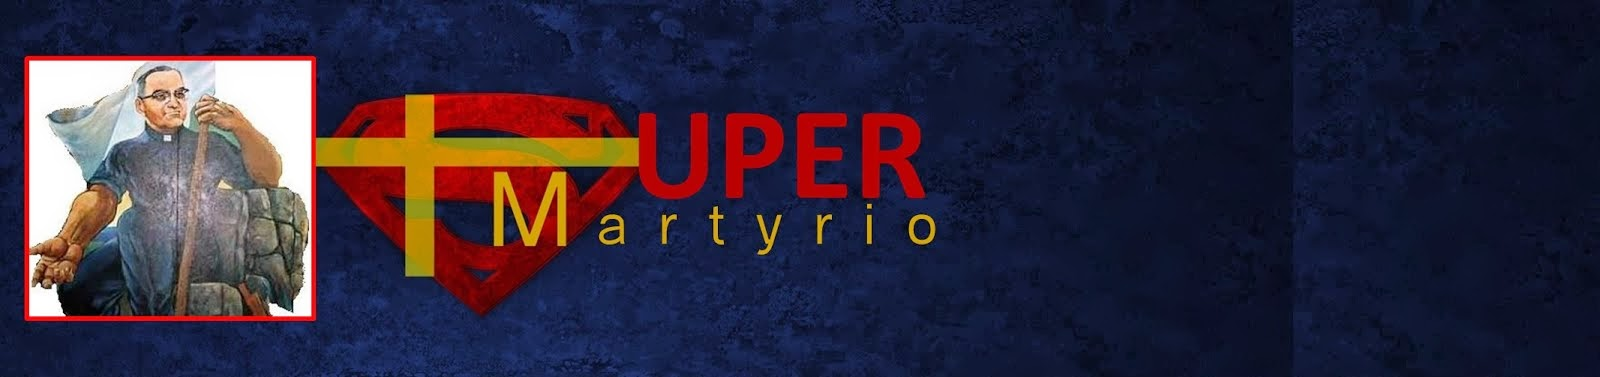 SUPER MARTYRIO